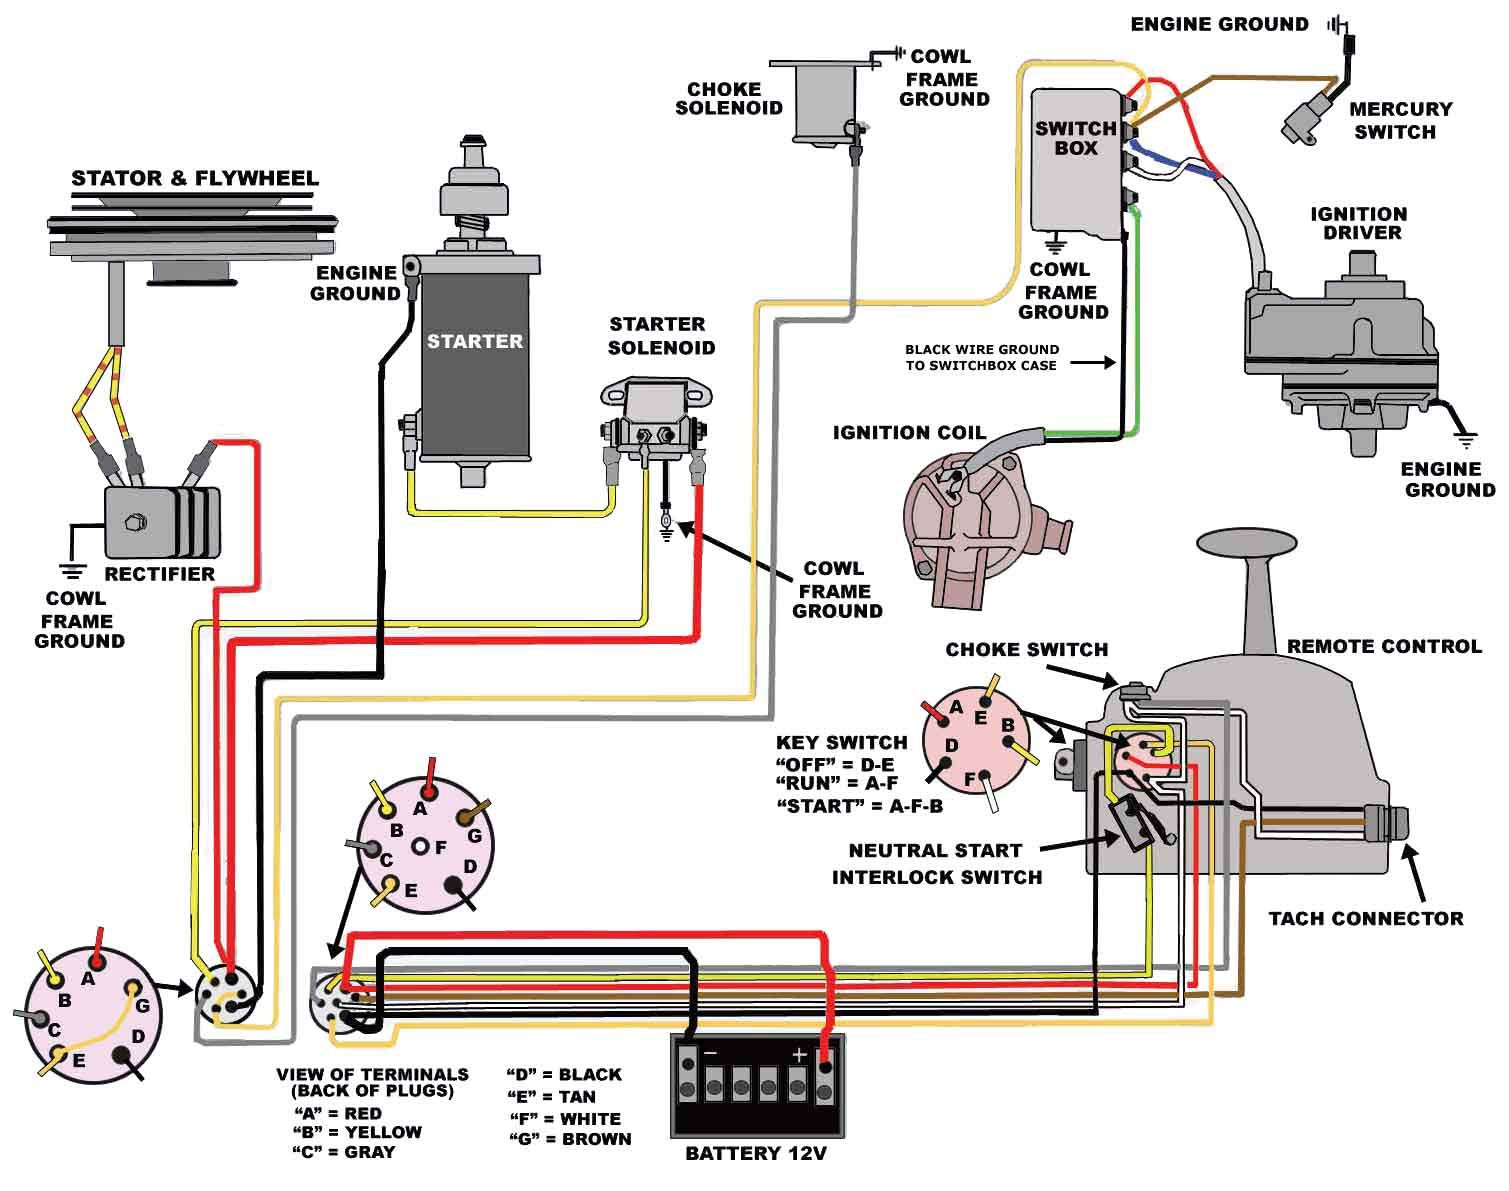 13cfb2d962bcd0c03103625817b7d51d mercury outboard wiring diagram diagram pinterest mercury mercury wiring diagram at webbmarketing.co